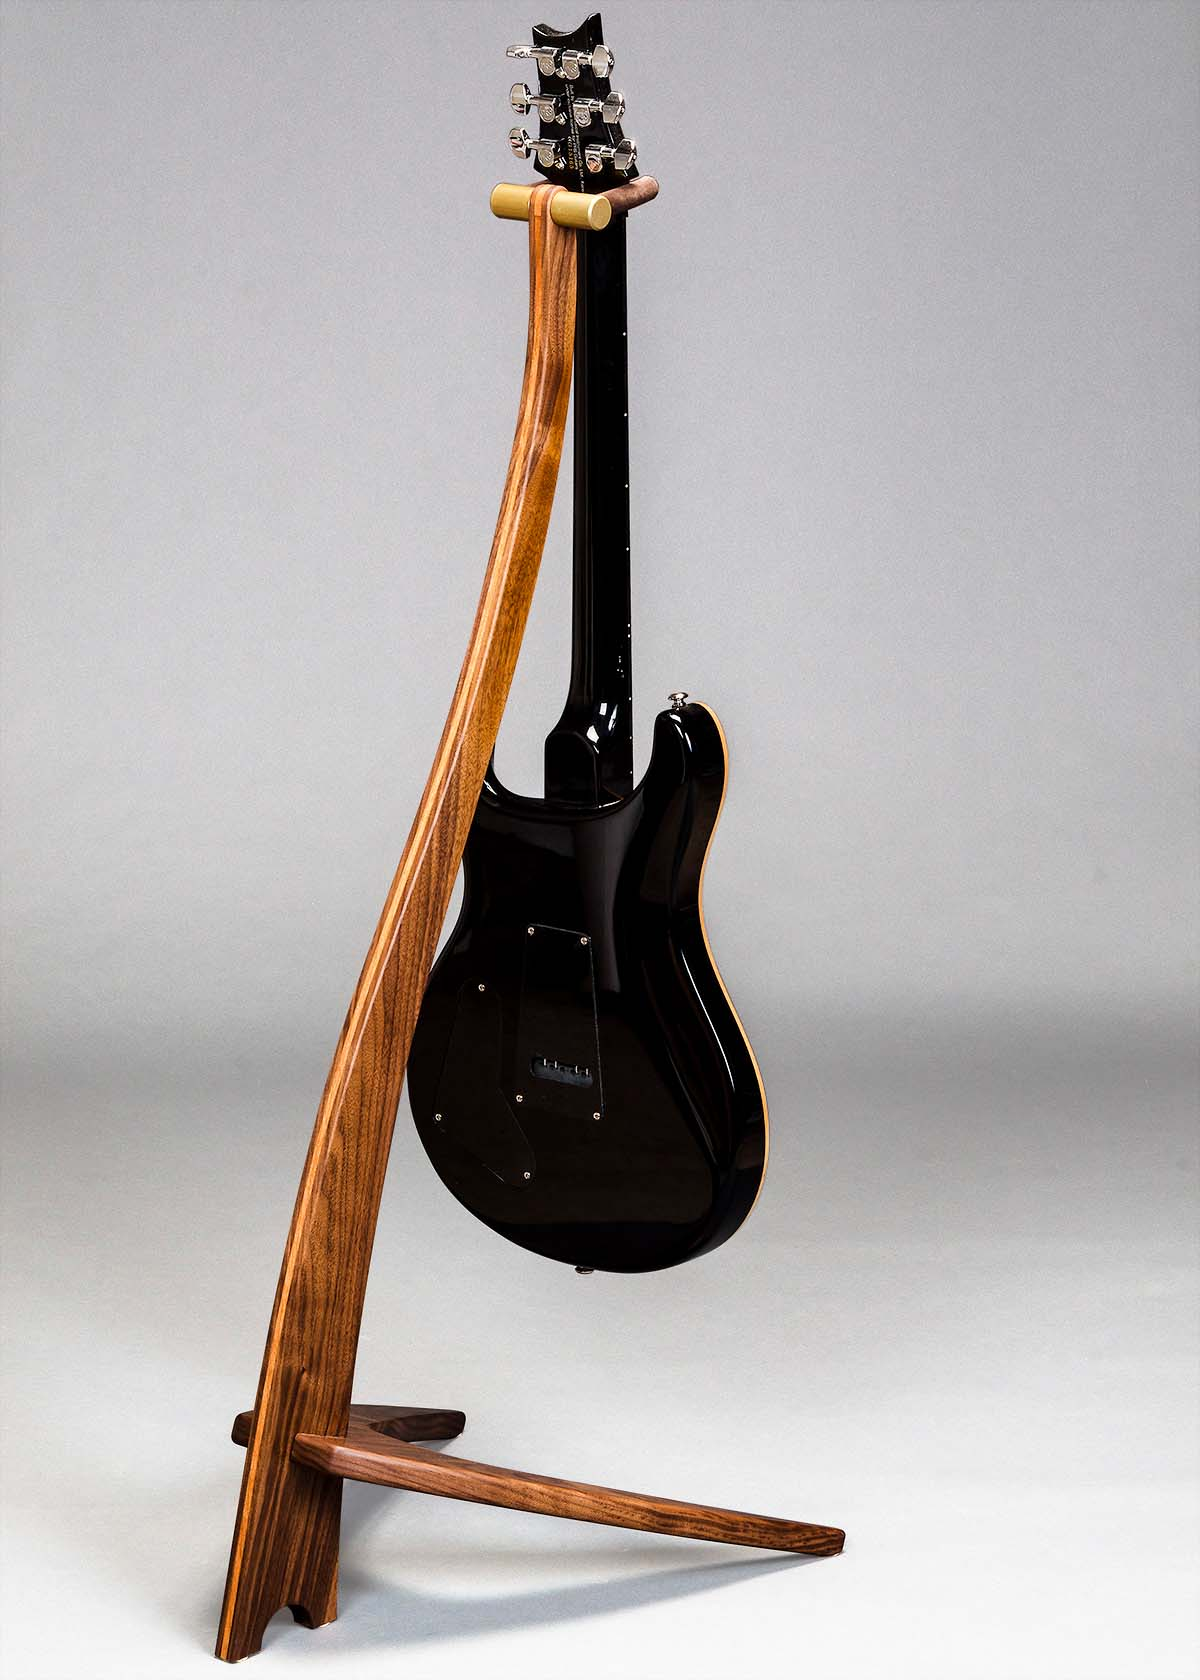 WM Guitar Stand in Walnut with Cherry Inlay